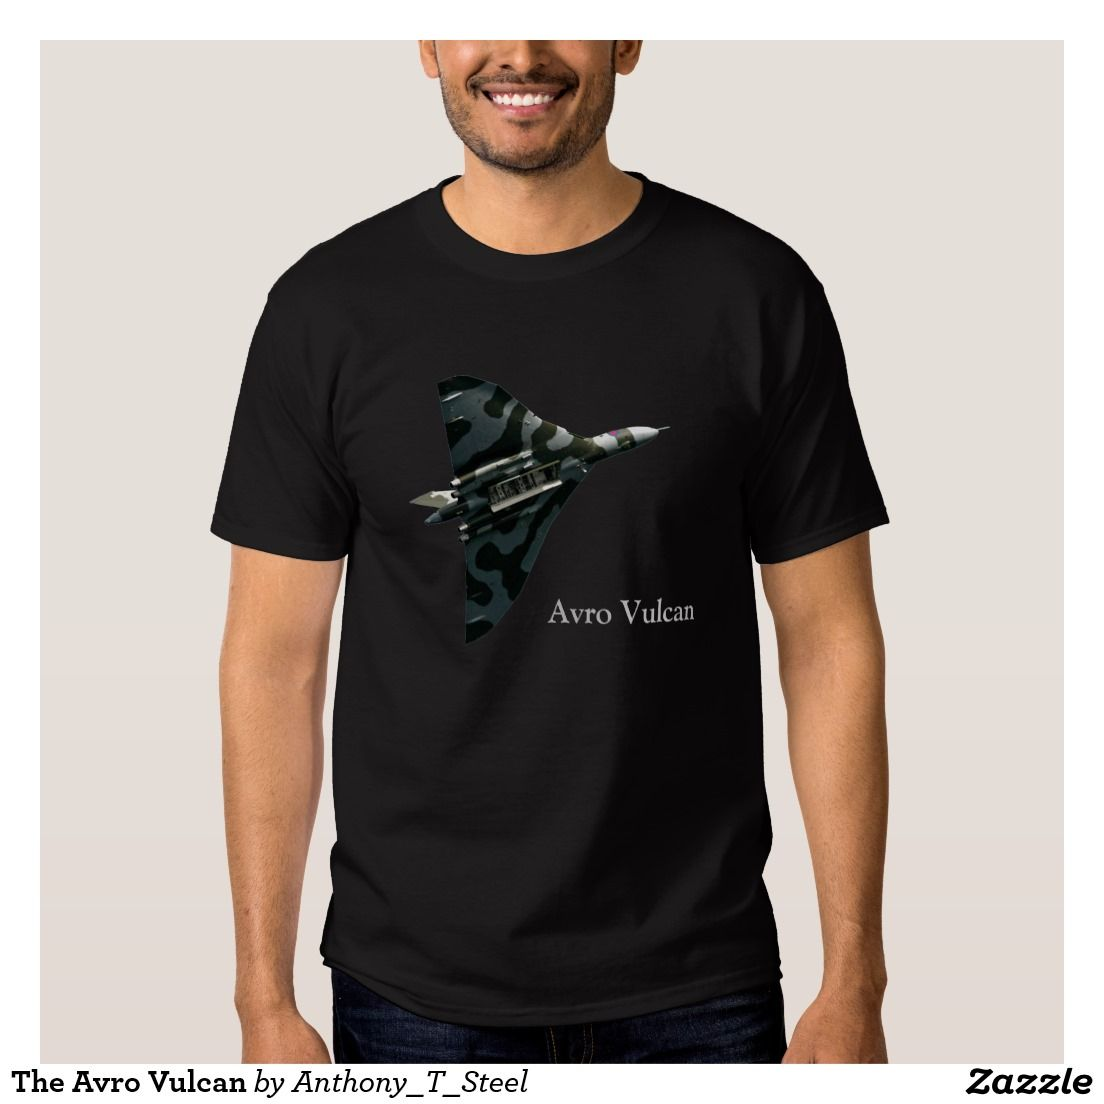 The Avro Vulcan T-shirt.  The Avro Vulcan Bomber decorates the front of this t shirt. You are looking up at it, and can see the open bomb bay. This makes a great gift for an aviation enthusiast.